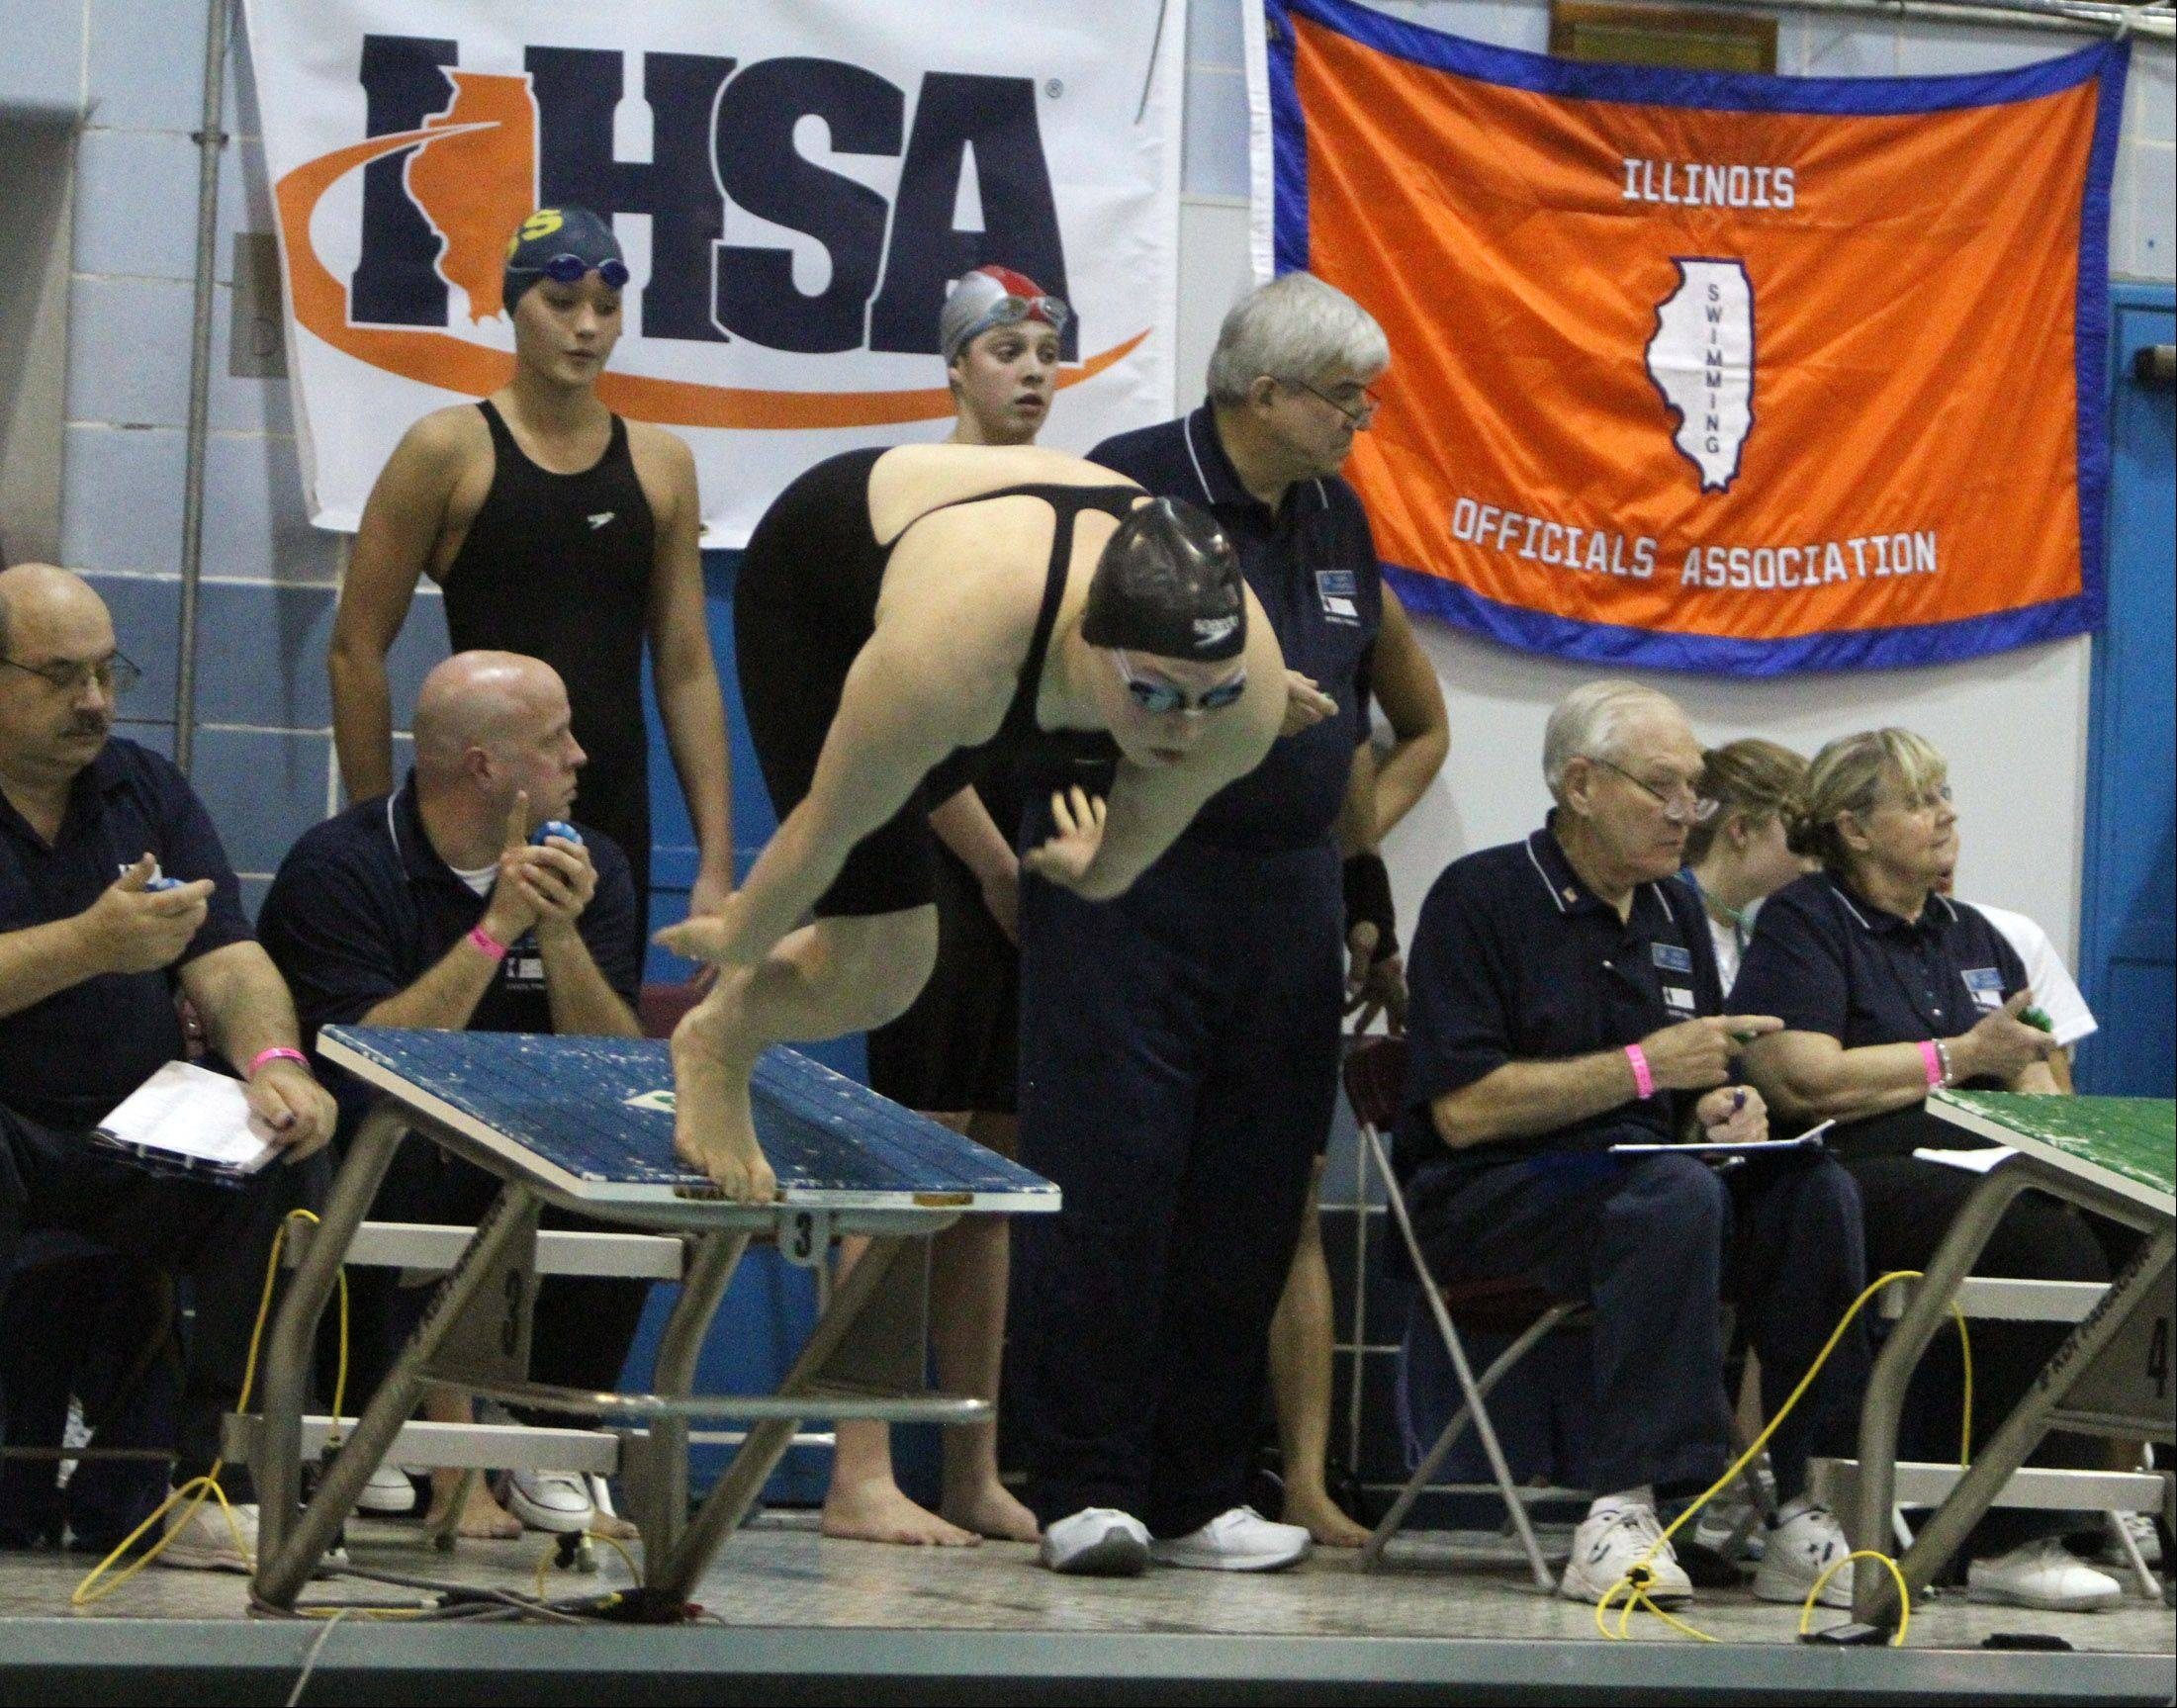 Barrington's Danielle Elliott at the start of the 500-yard freestyle at the state meet preliminaries in Winnetka on Friday.